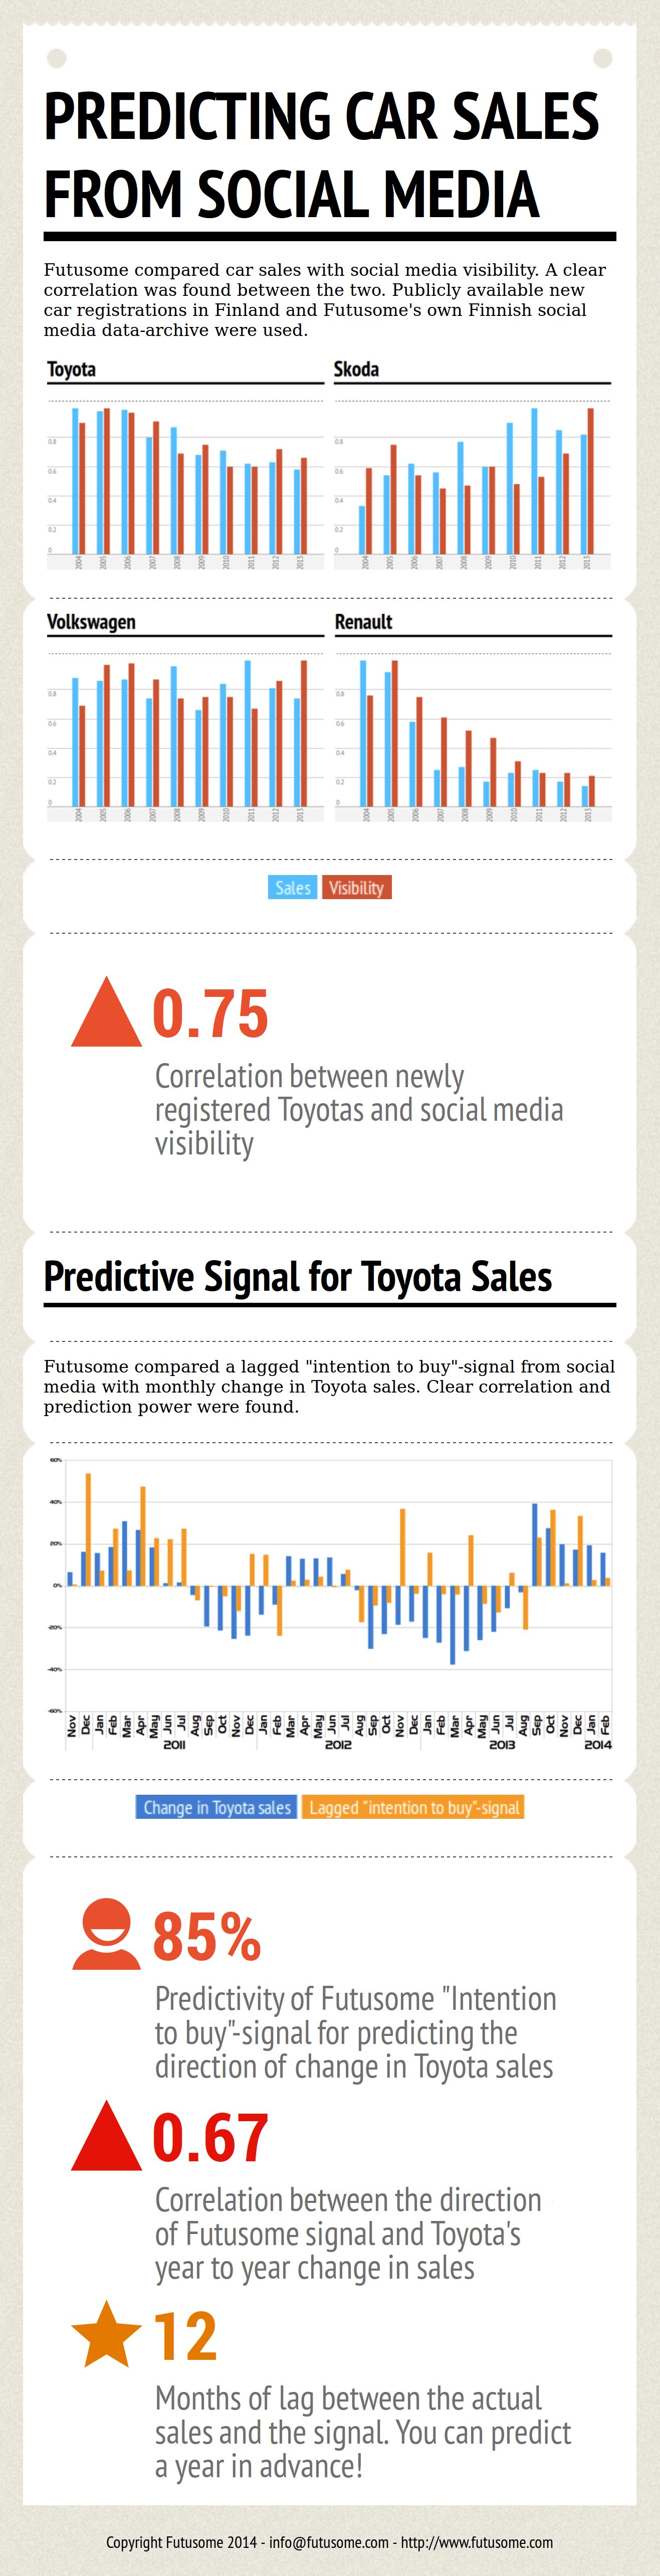 predicting car sales using futusomes data. Intent to buy Skoda, Volkswagen, Toyota and Renault. Data shows 12 month lead from intetn to sales.